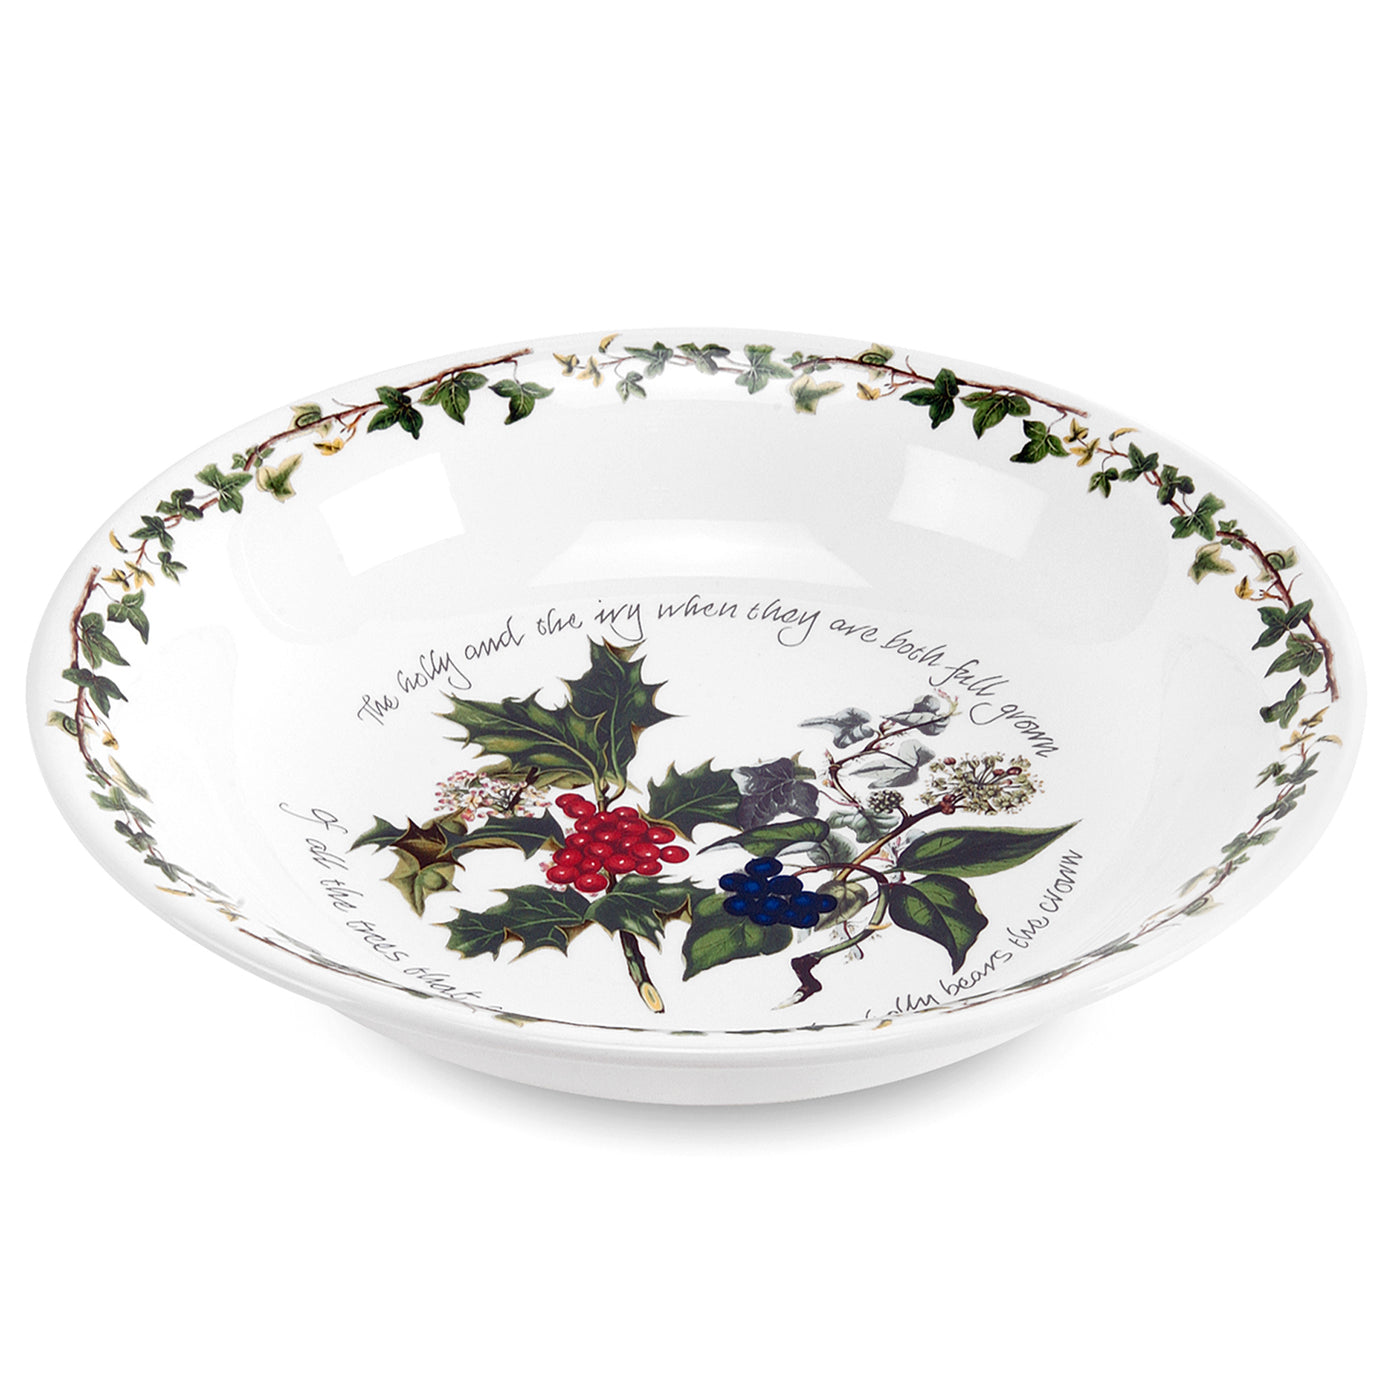 "Holly & Ivy Pasta Bowls 8"", Set of 6"